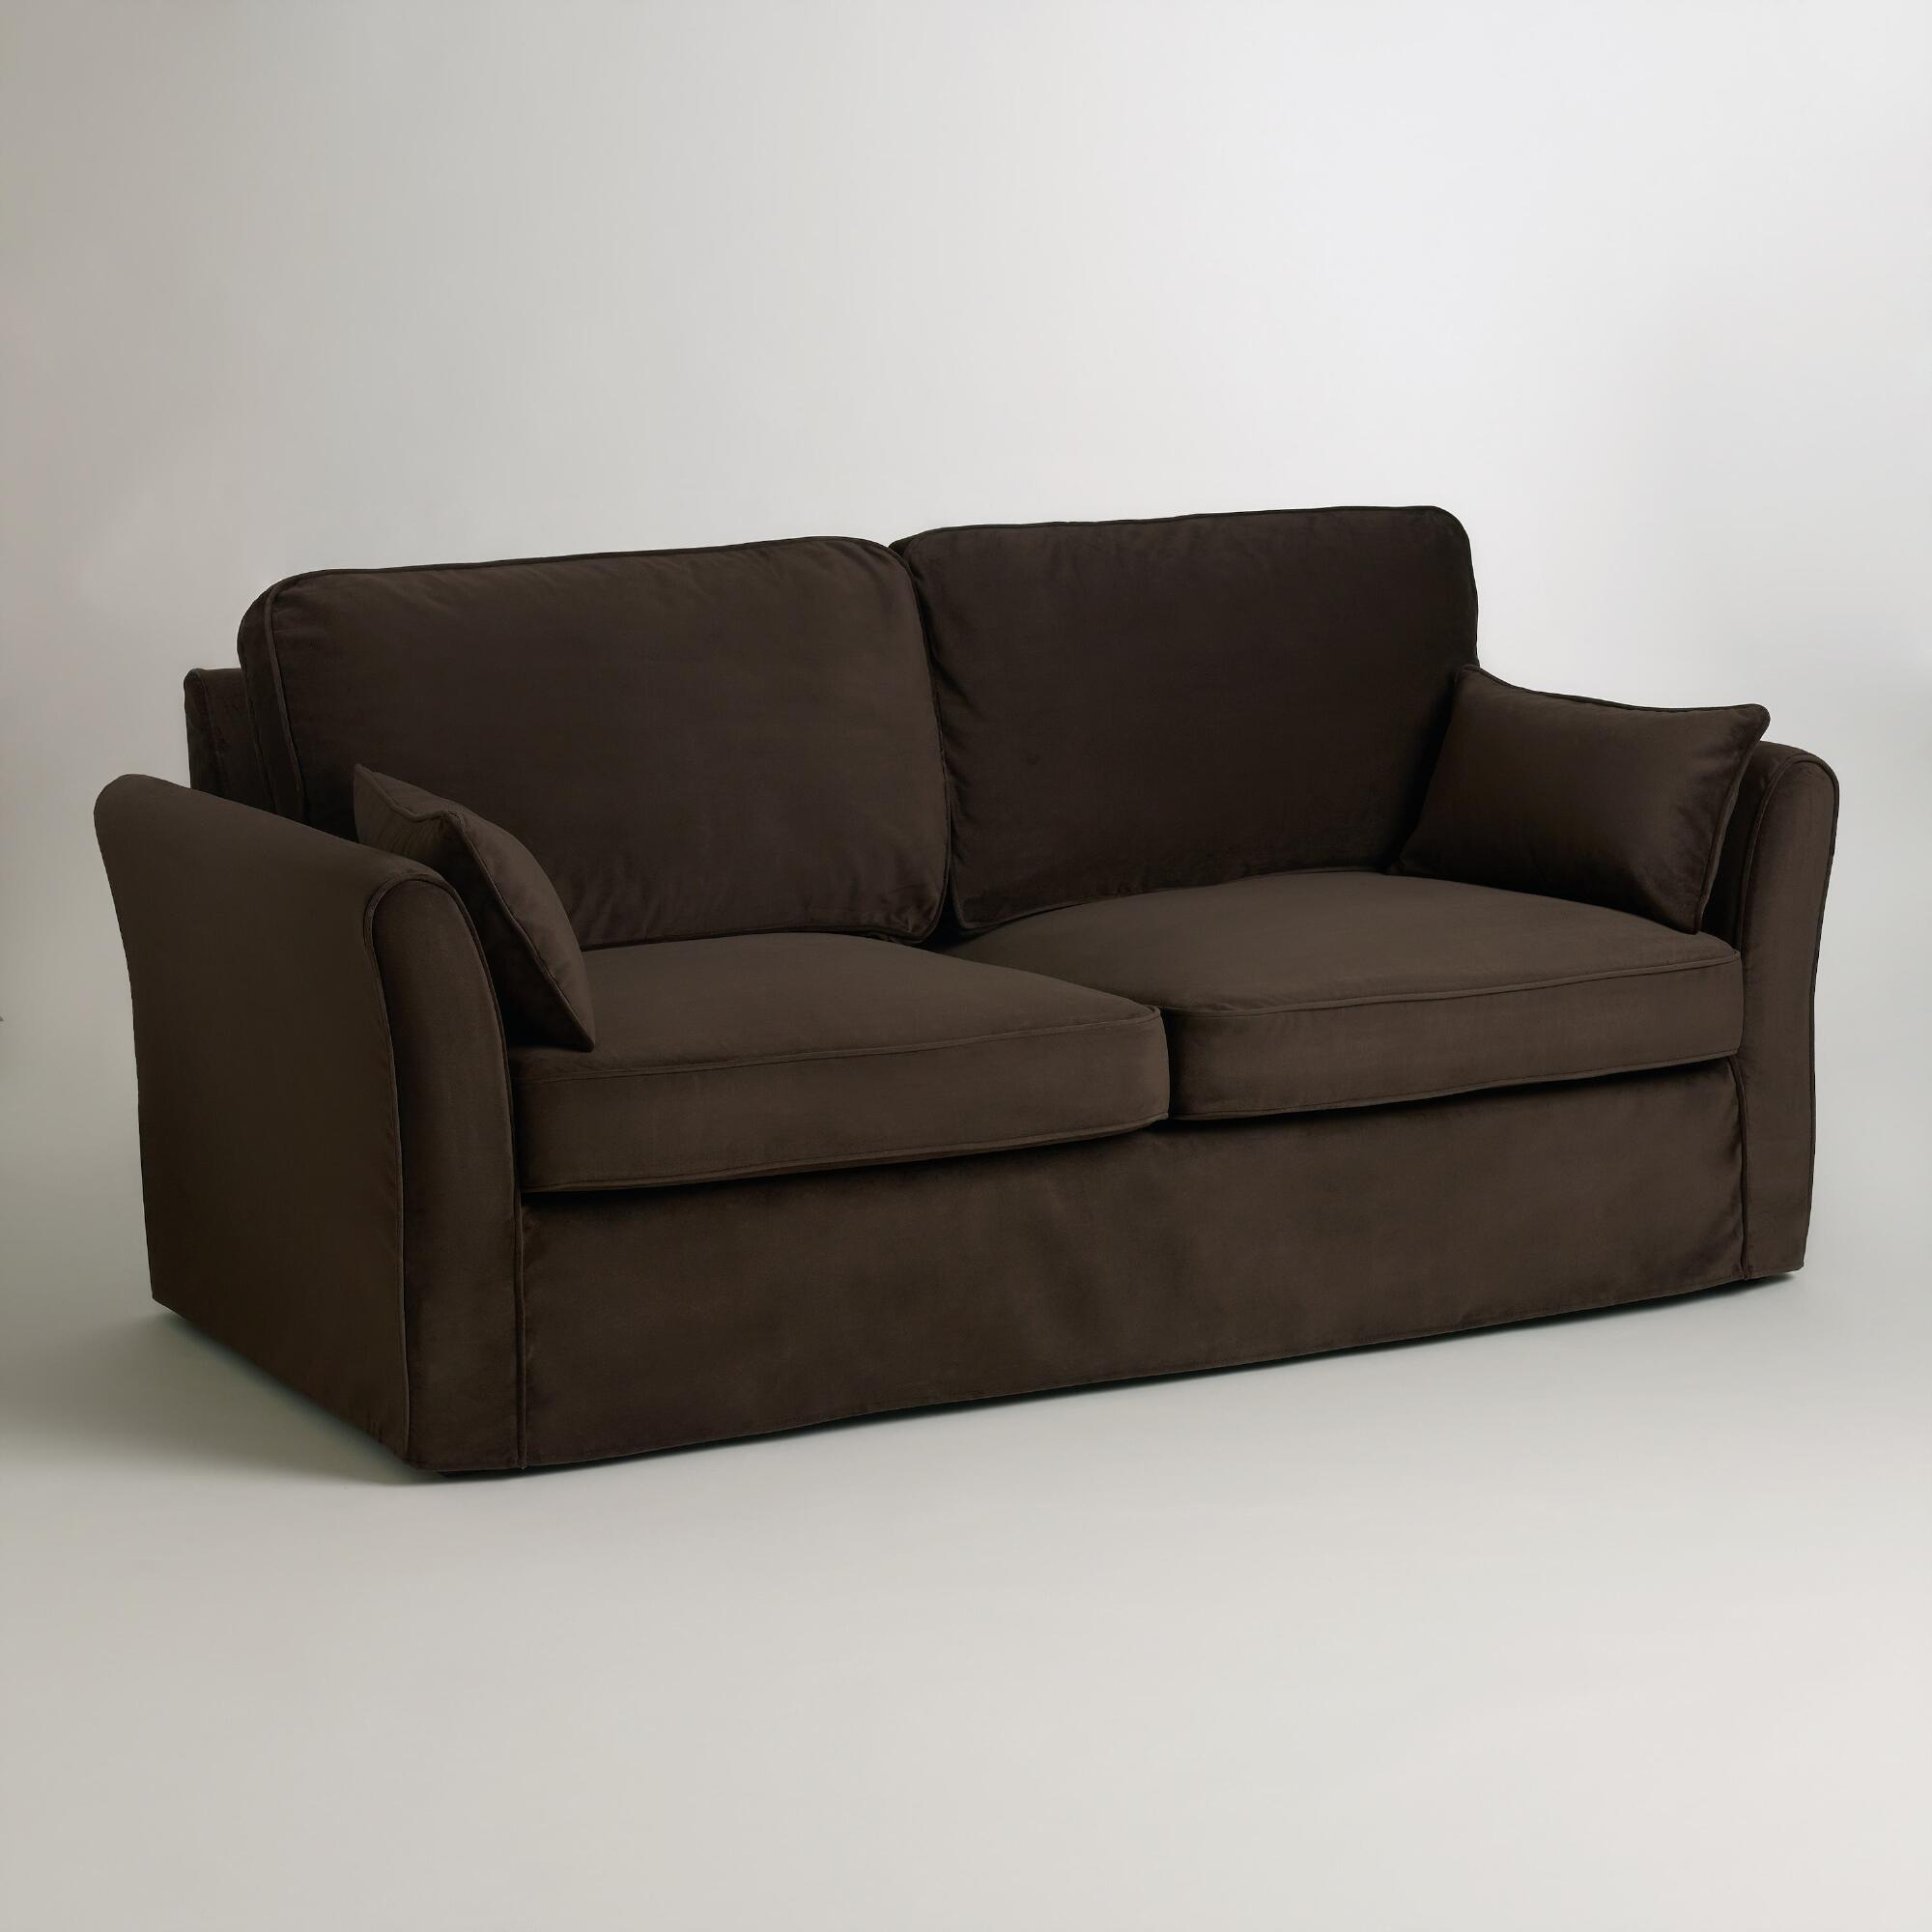 Chocolate Brown Velvet Loose Fit Luxe Sofa Slipcover